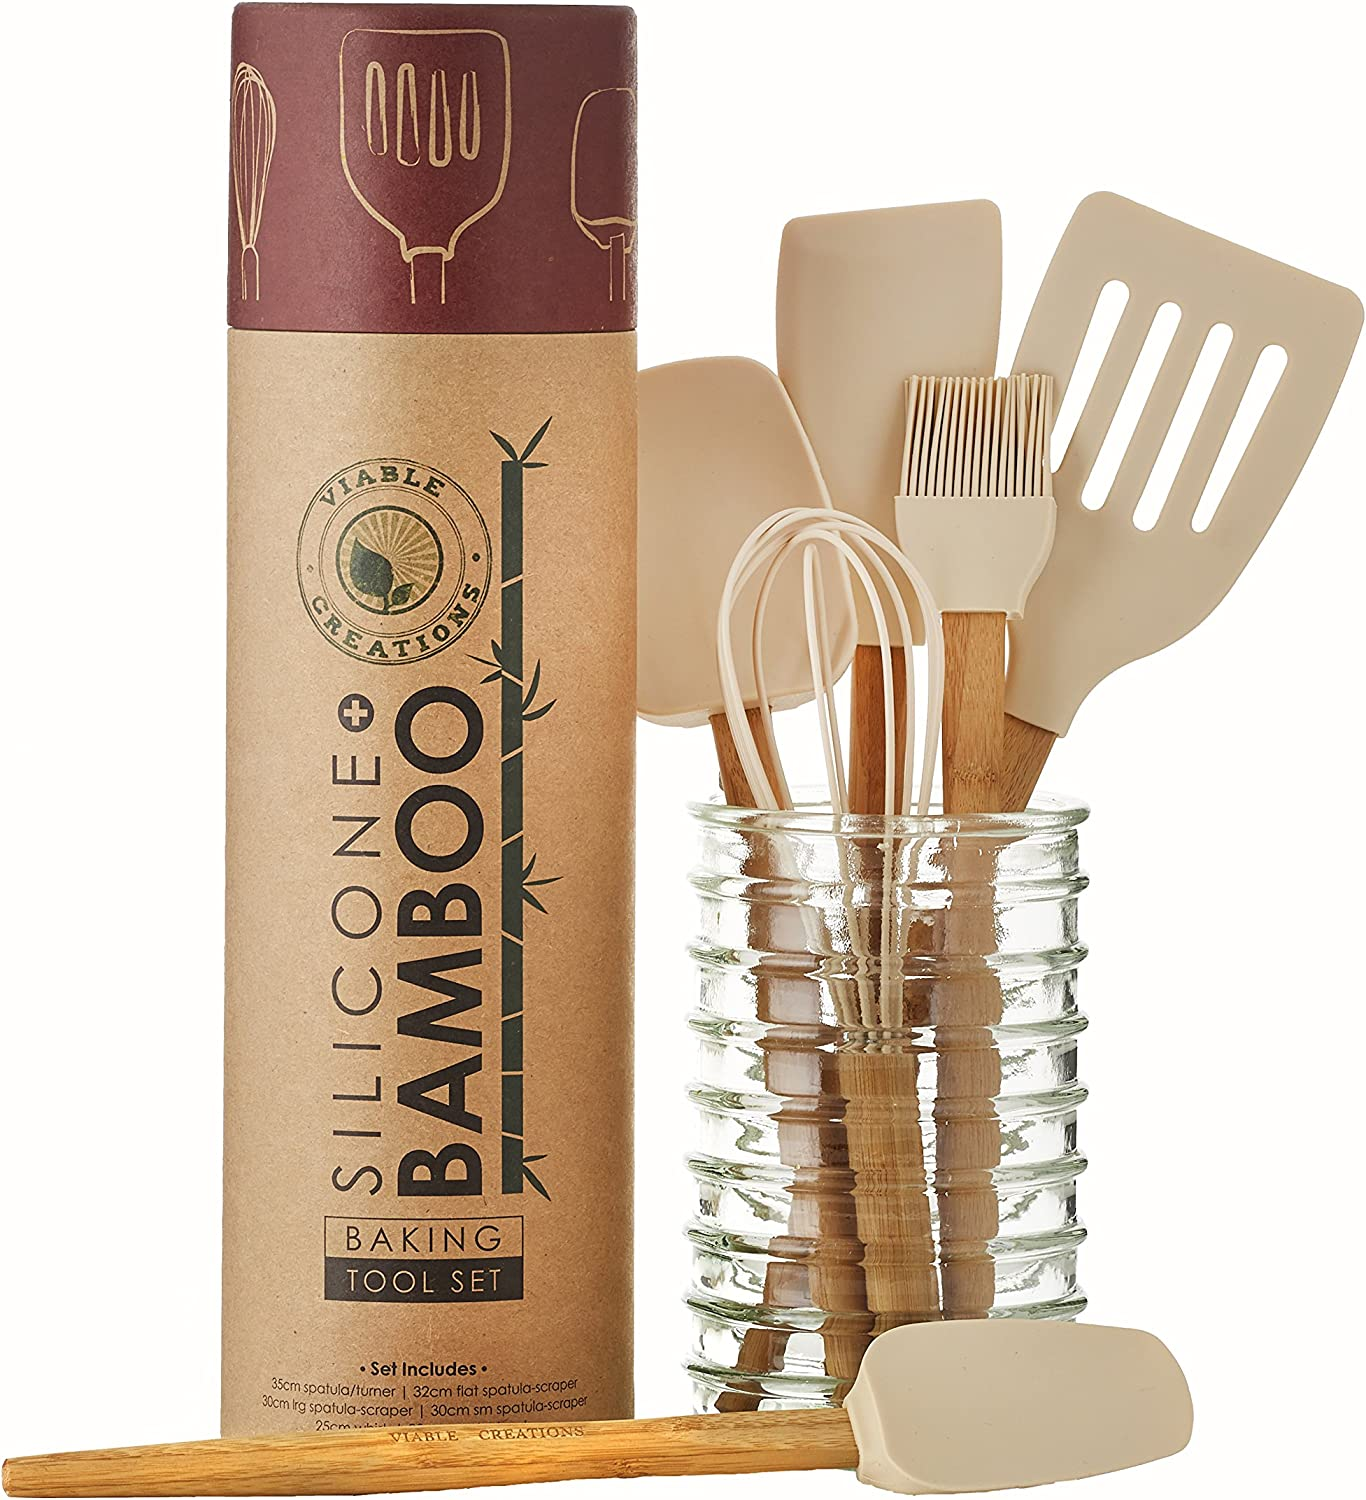 This one is for all those women who love to bake. This gift set has all the basic baking essentials like Whisk, Pastry Brush, Spatula Scraper, Turner, small spatula scraper, and a flat spatula scraper, This will help your loved one bake with ease.